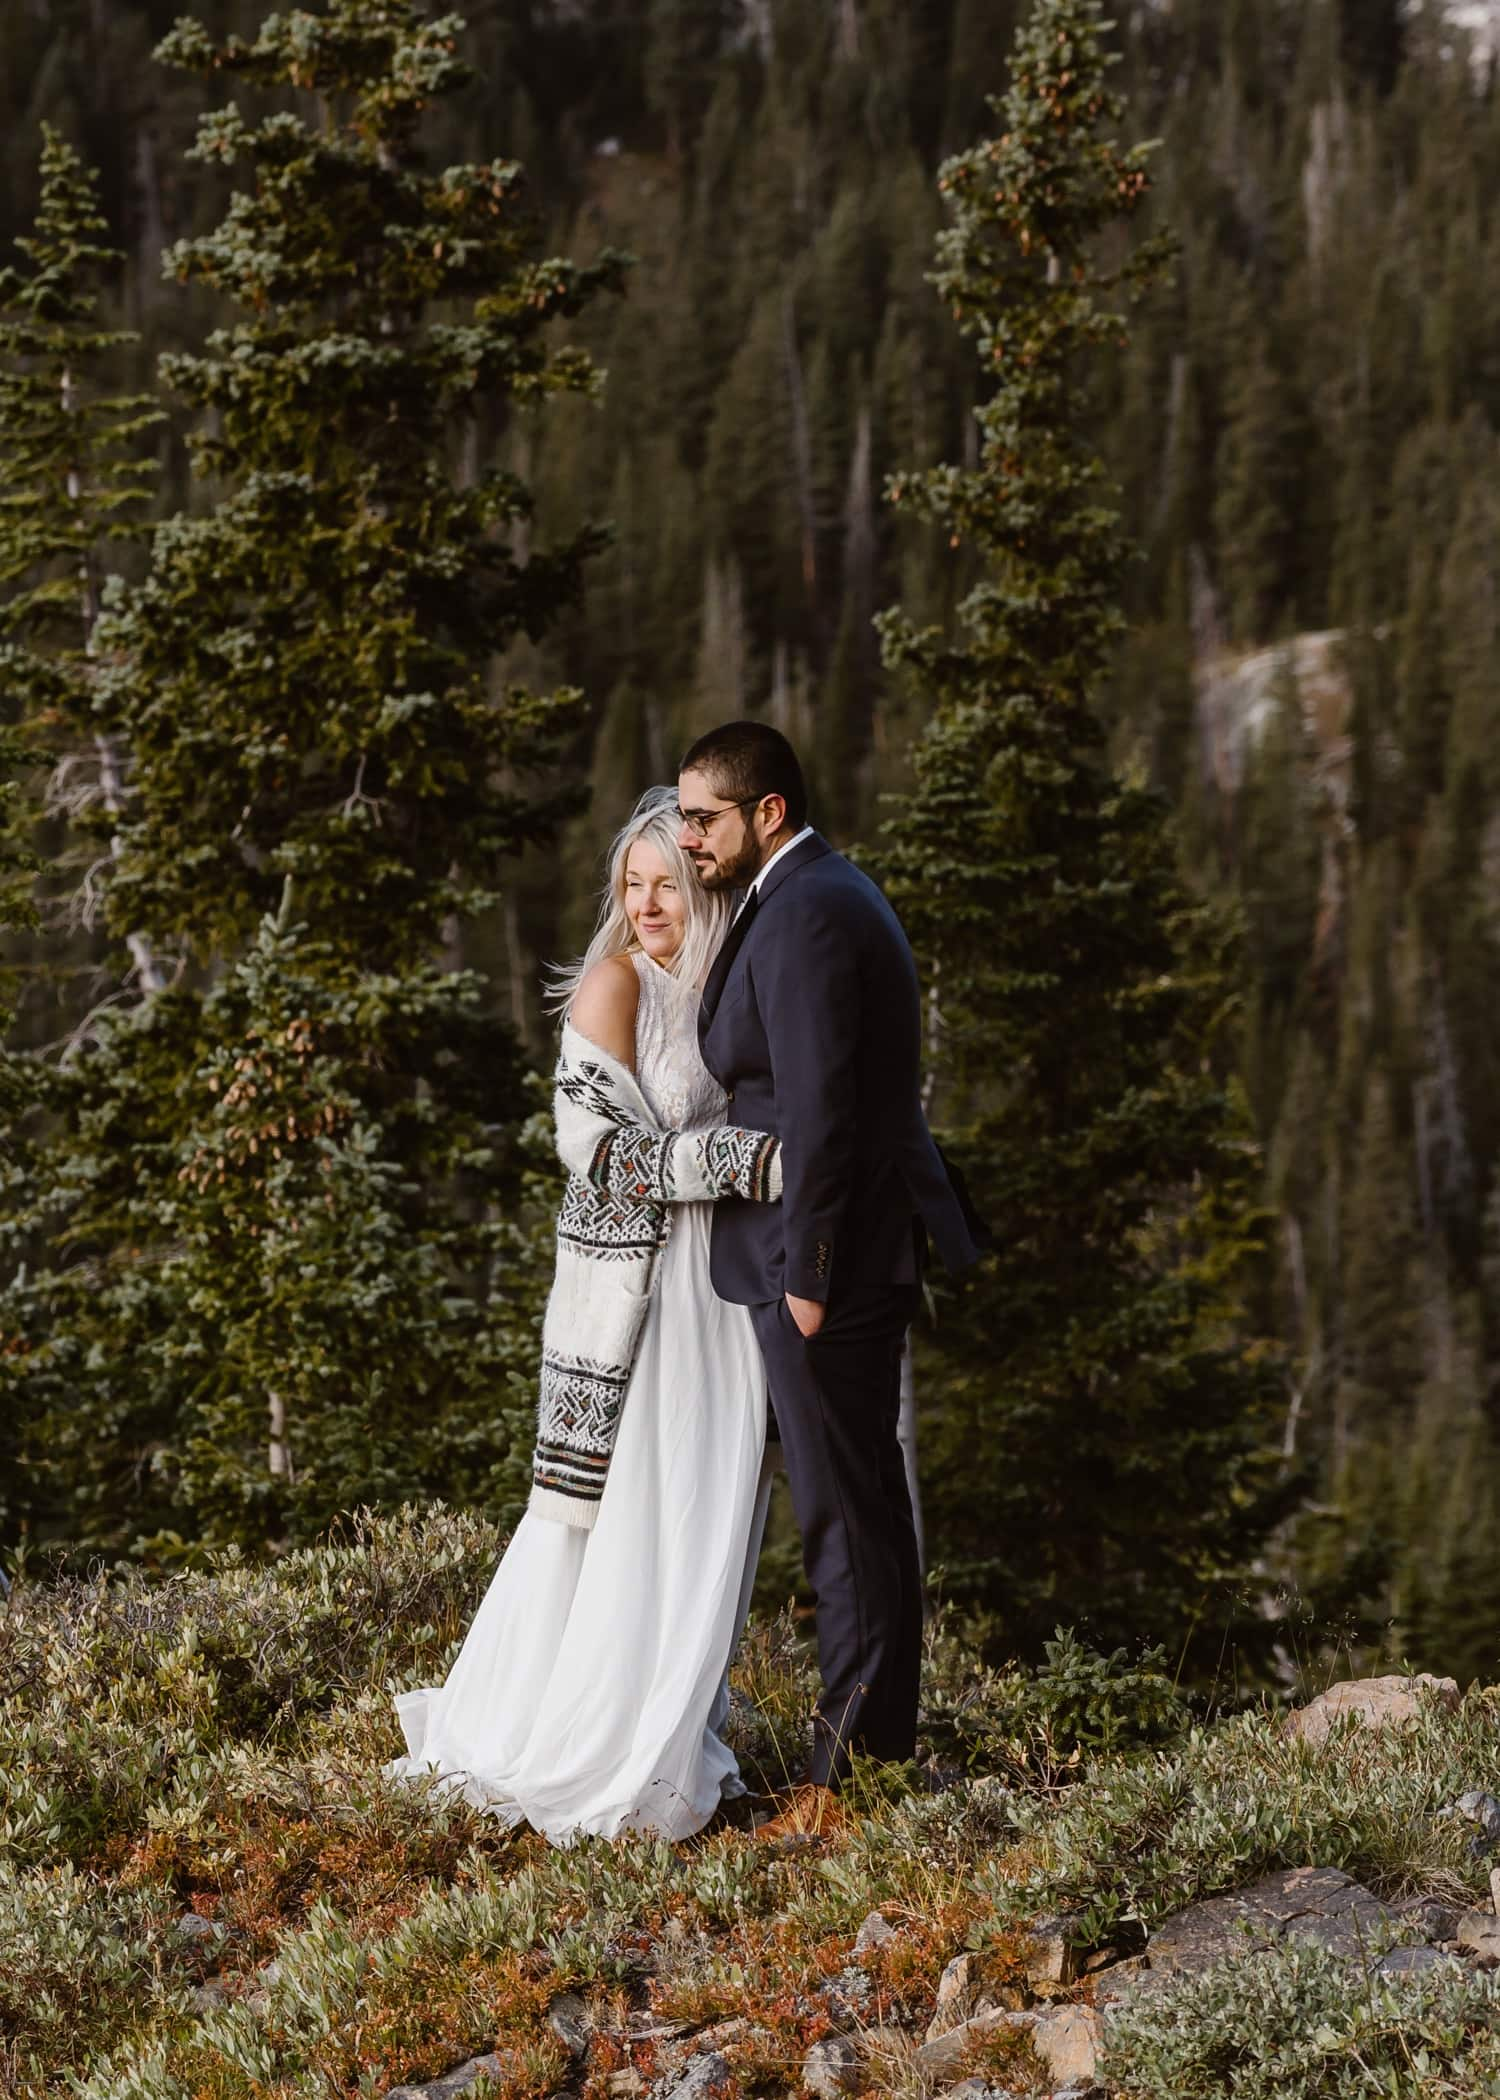 How to an Plan Elopement - Your Adventure Elopement Timeline